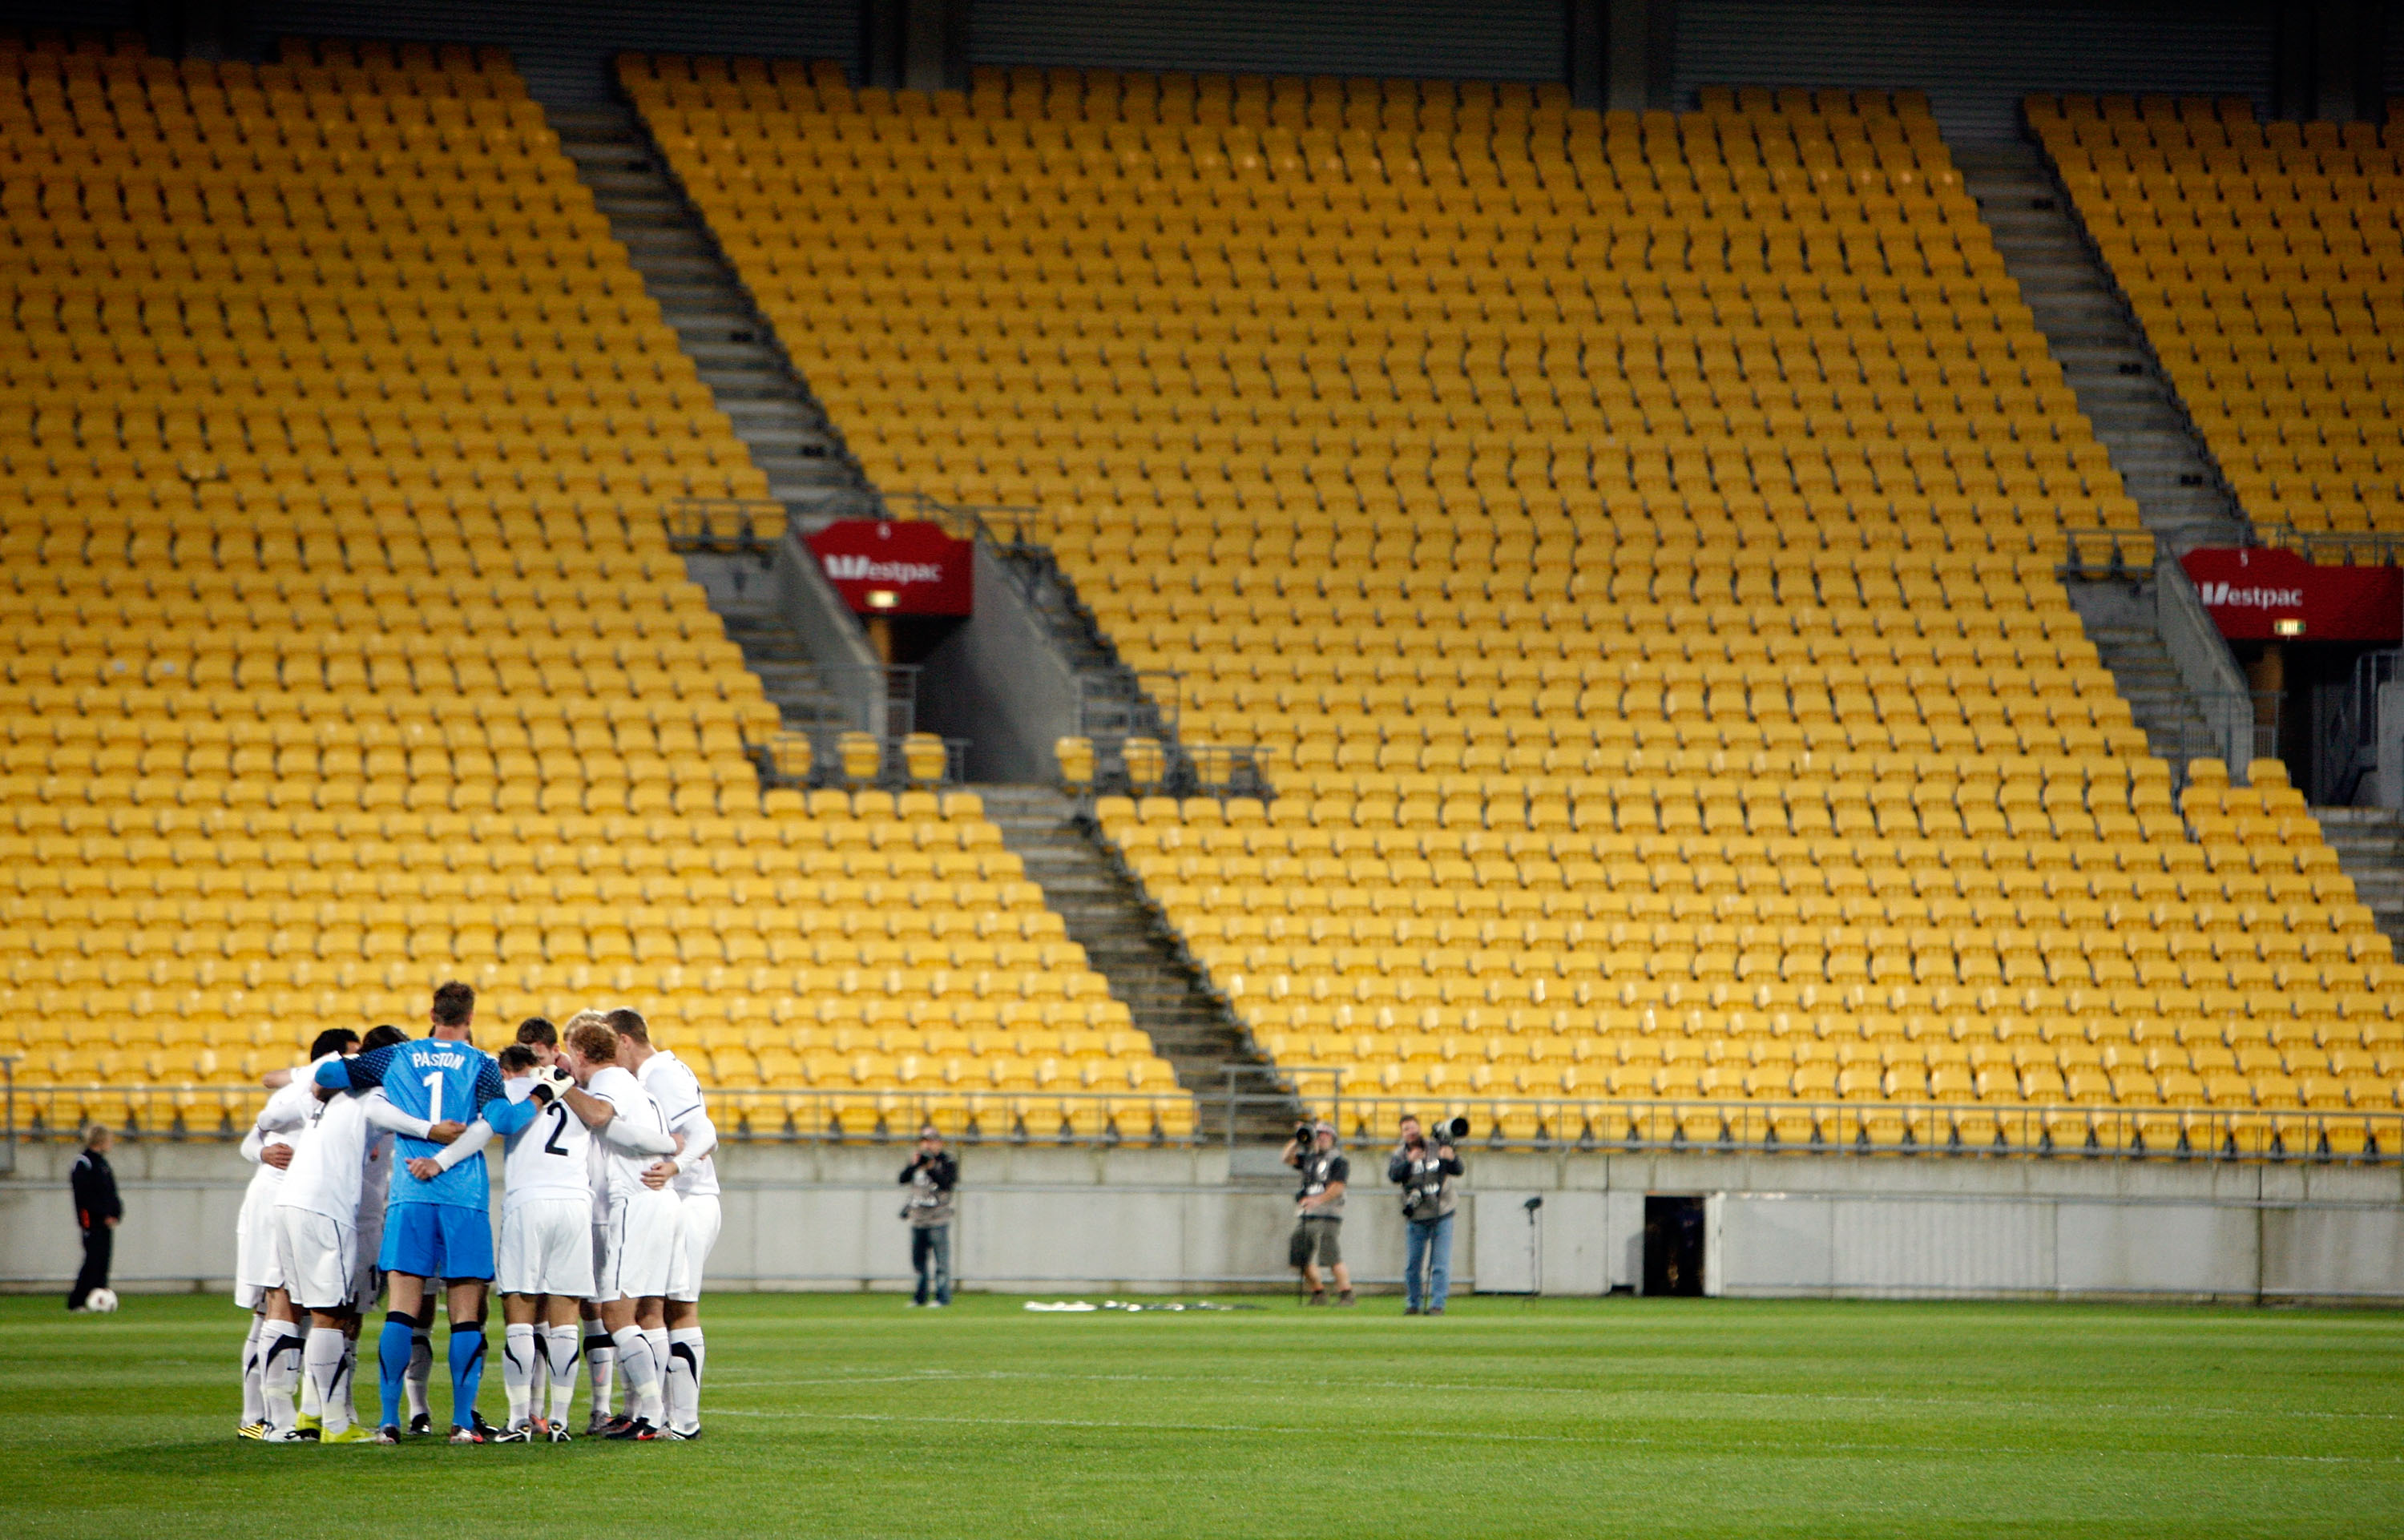 WELLINGTON, NEW ZEALAND - OCTOBER 12:  The All Whites form a huddle in front of empty stands during the International Friendly match between the New Zealand All Whites and Paraguay at Westpac Stadium on October 12, 2010 in Wellington, New Zealand.  (Photo